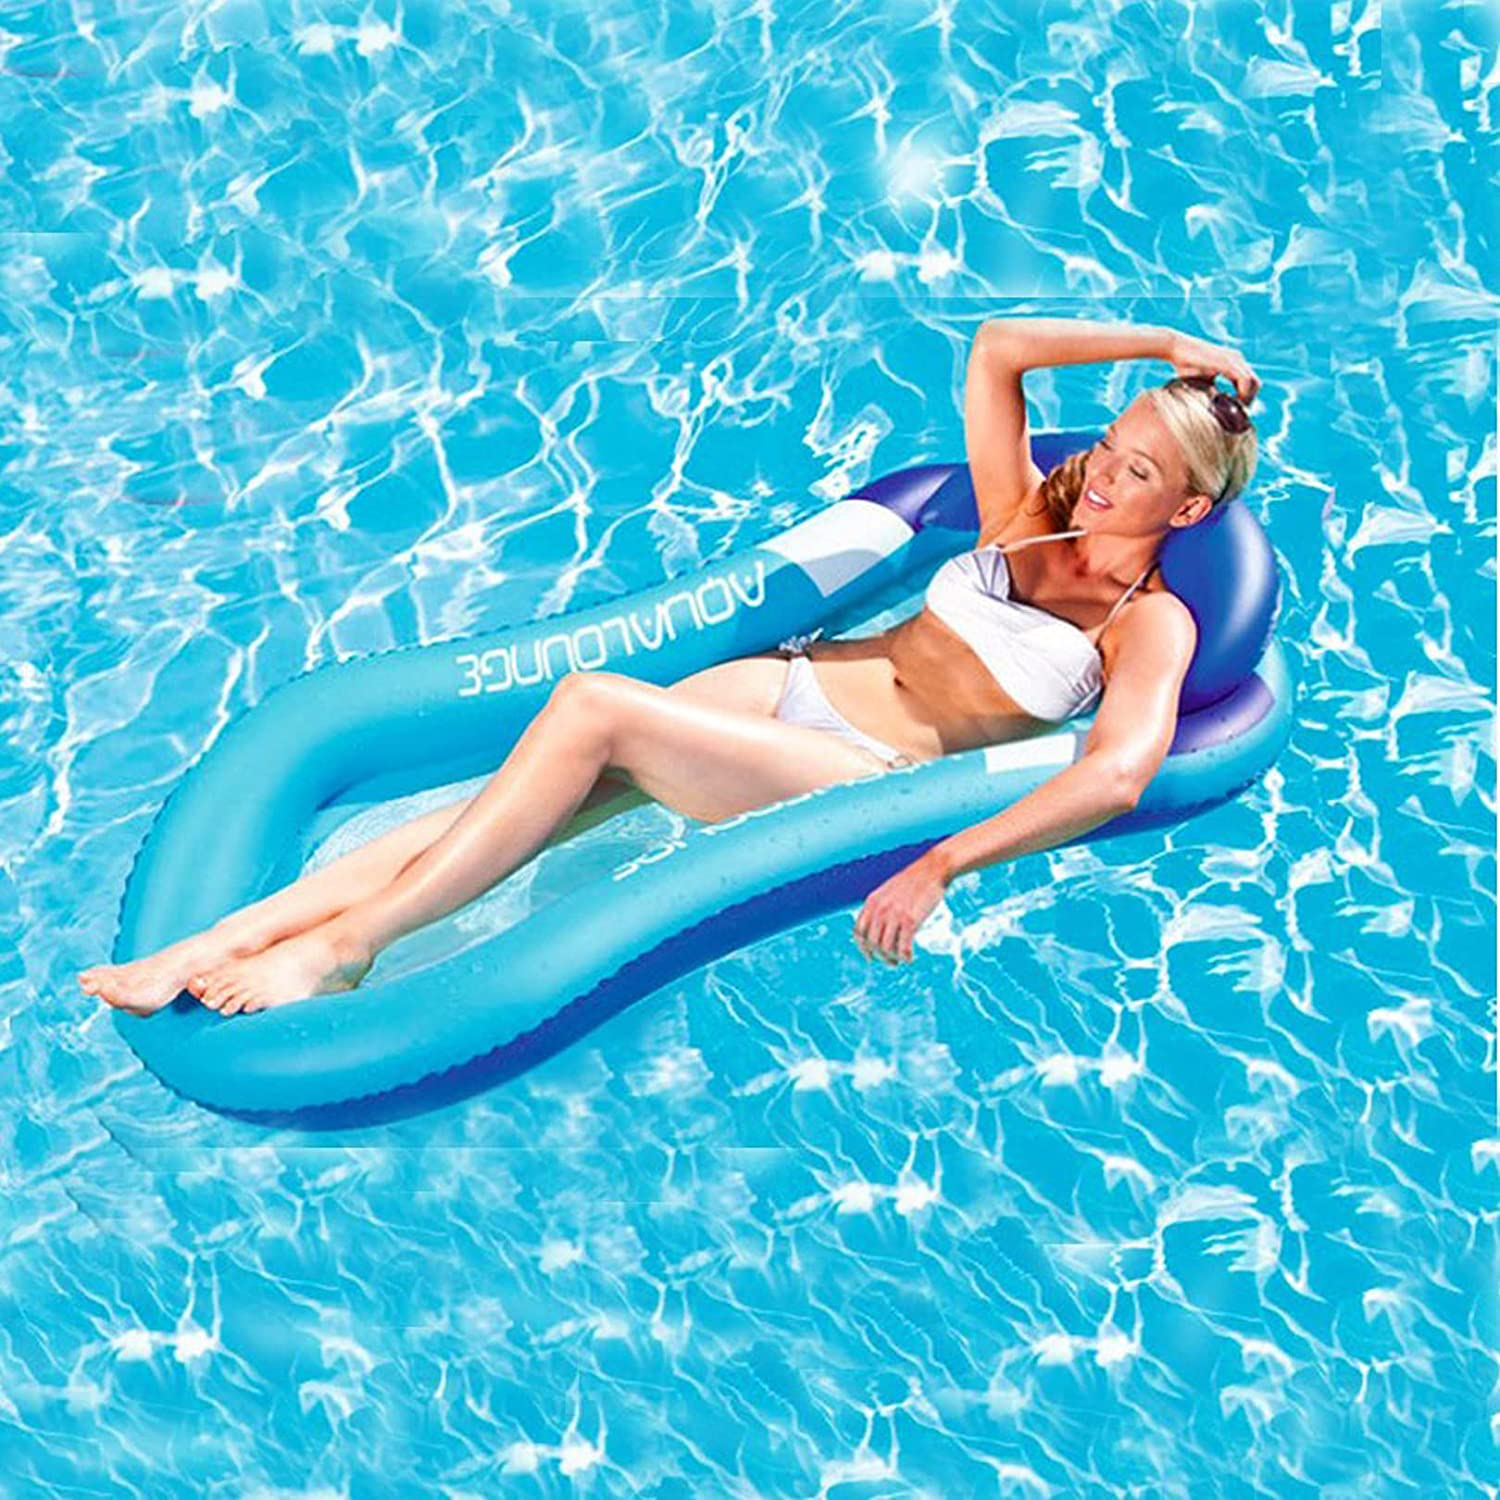 QIHUI Water Floating Hammock Comfortable Pool Float We OFFer at cheap prices Low price Loun Spring